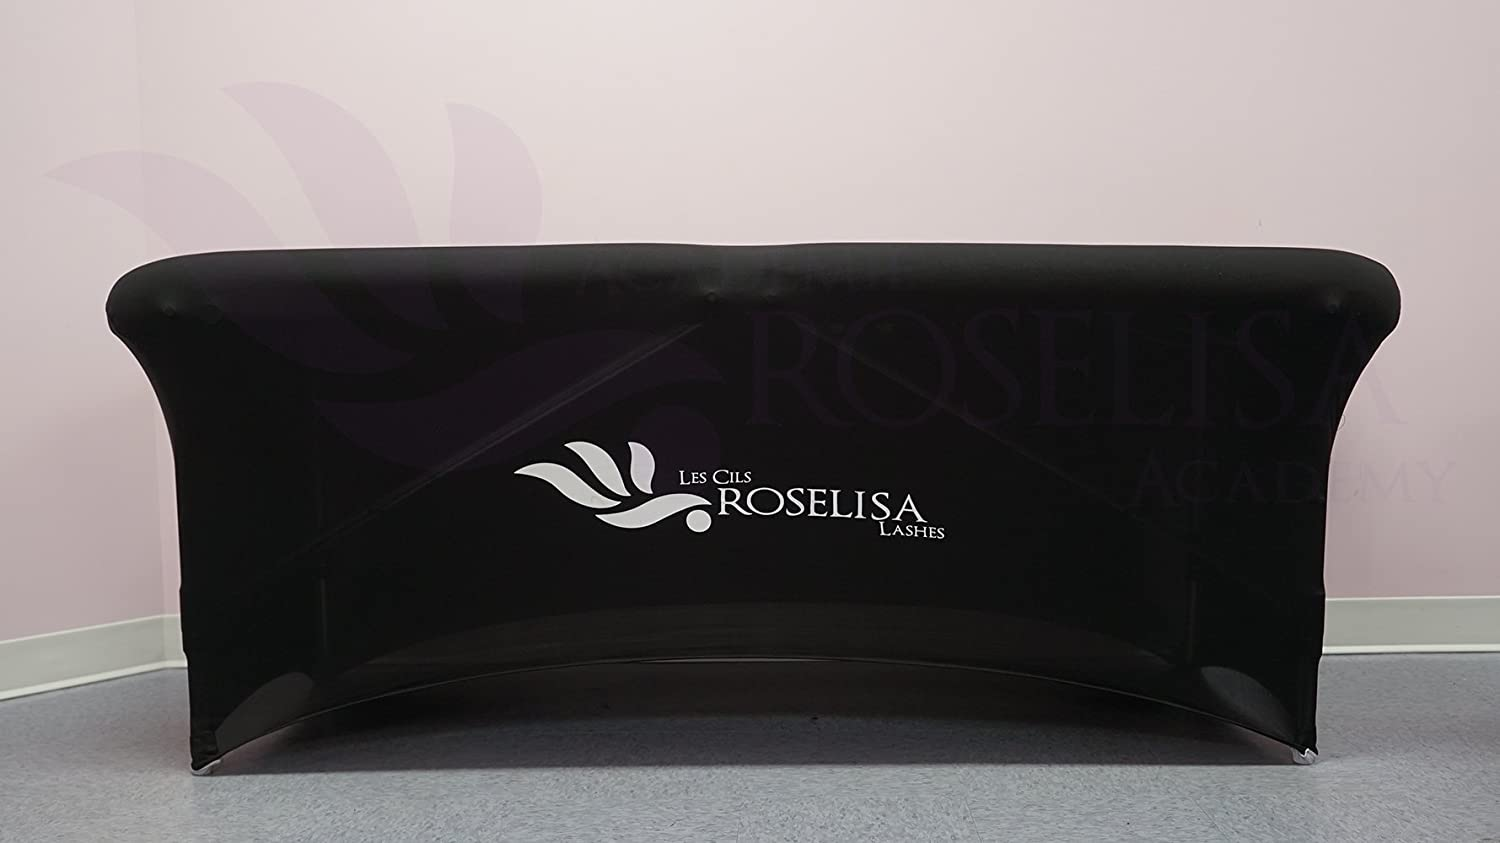 Roselisa Bed Cover for Massage Tables - Spandex and Polyester Fabric Roselisa Inc.